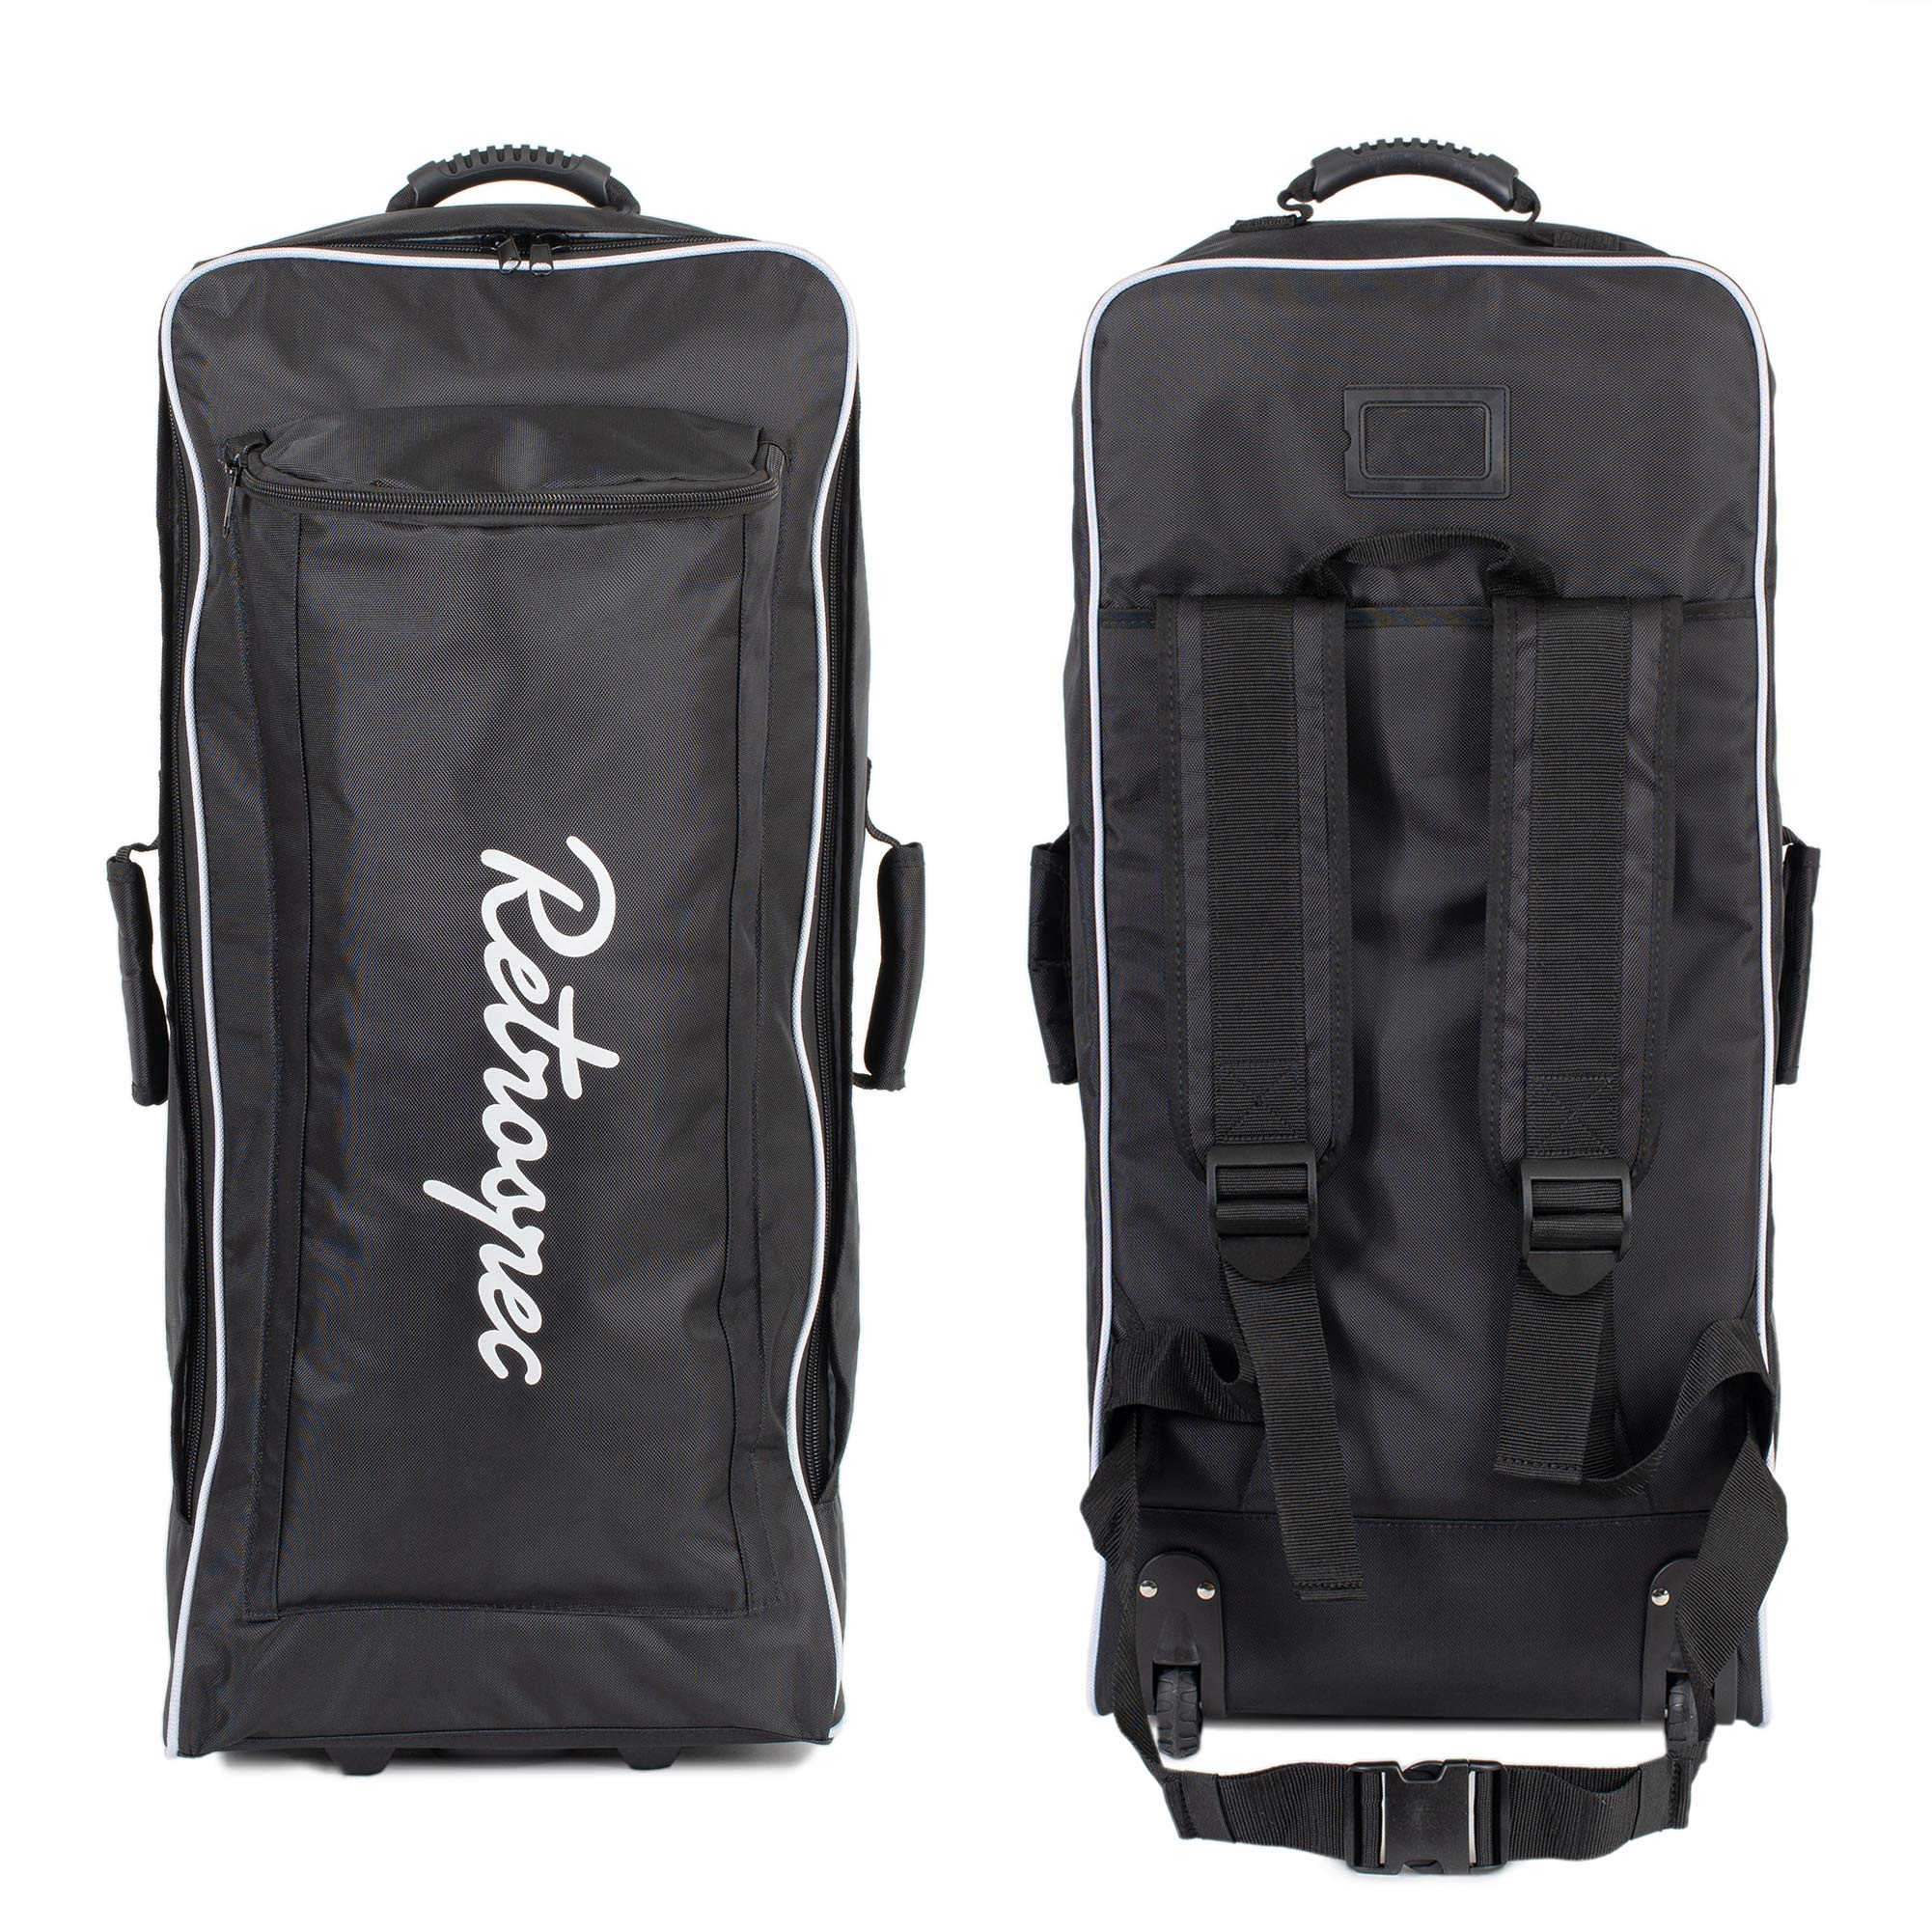 Ten Toes SUP Emporium Ten Toes Nomad Istand Up Paddle Board Roller Bag with Wheels by Retrospec